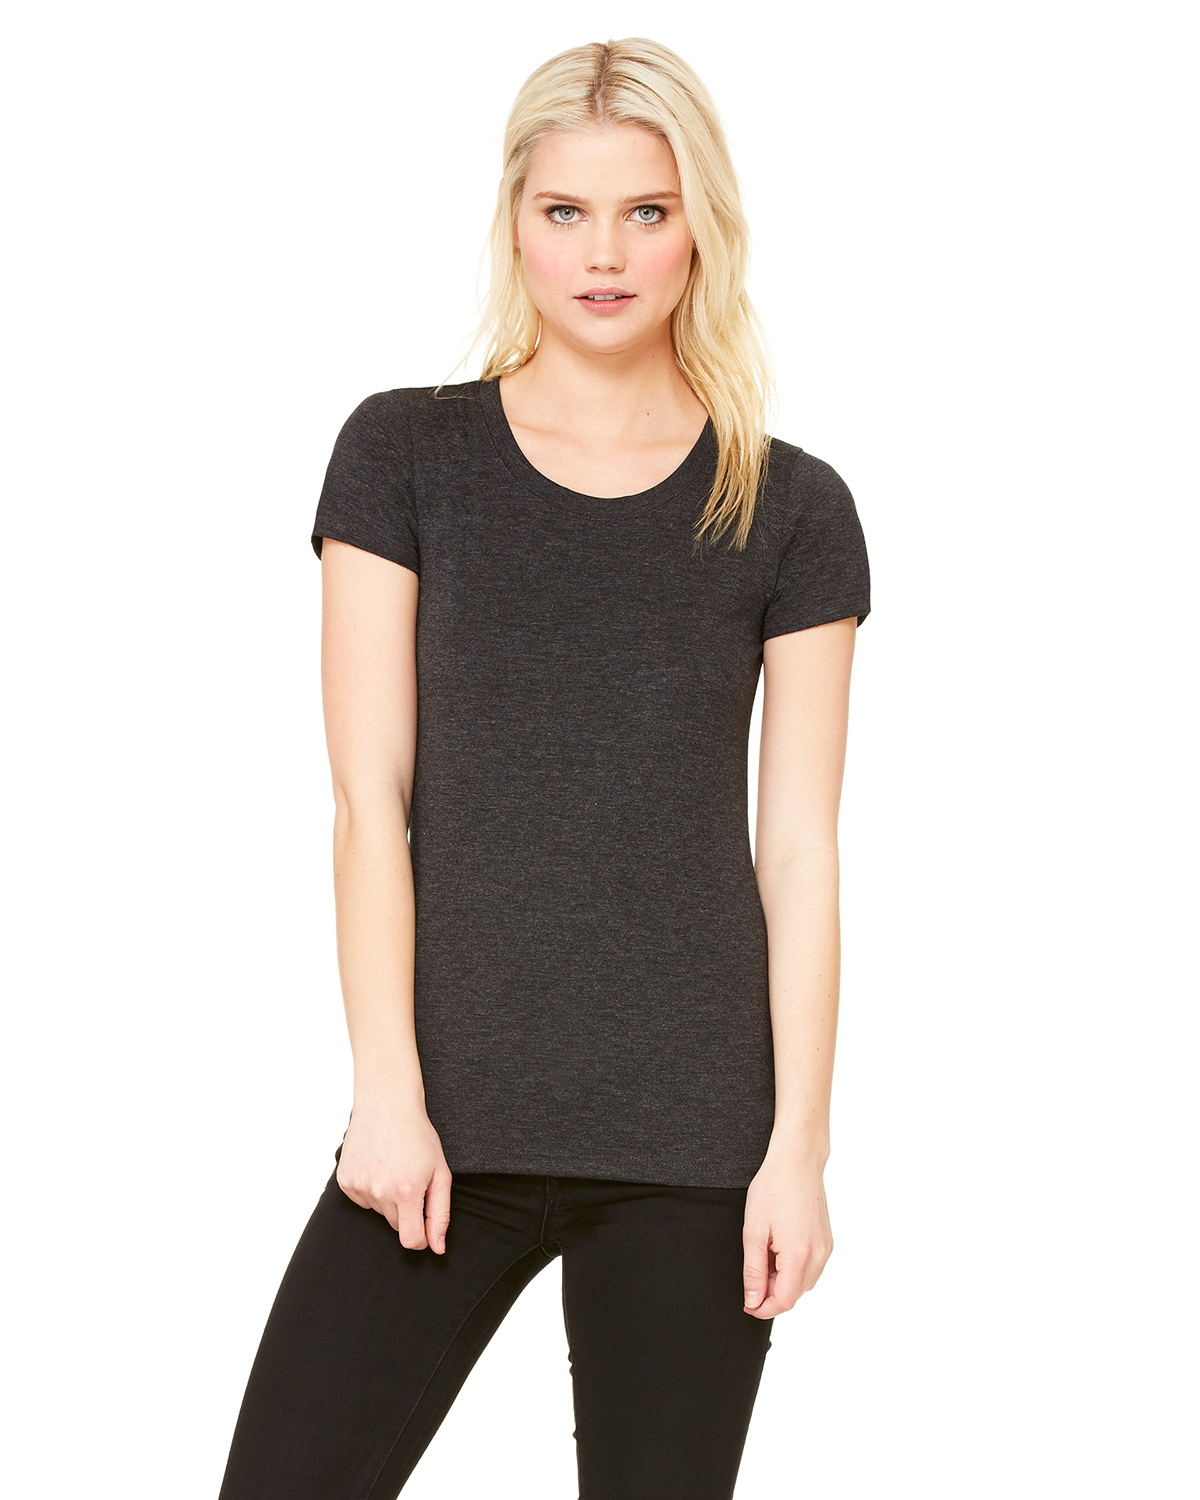 Canvas B8413 - Ladies TriBlend Short-Sleeve Tee